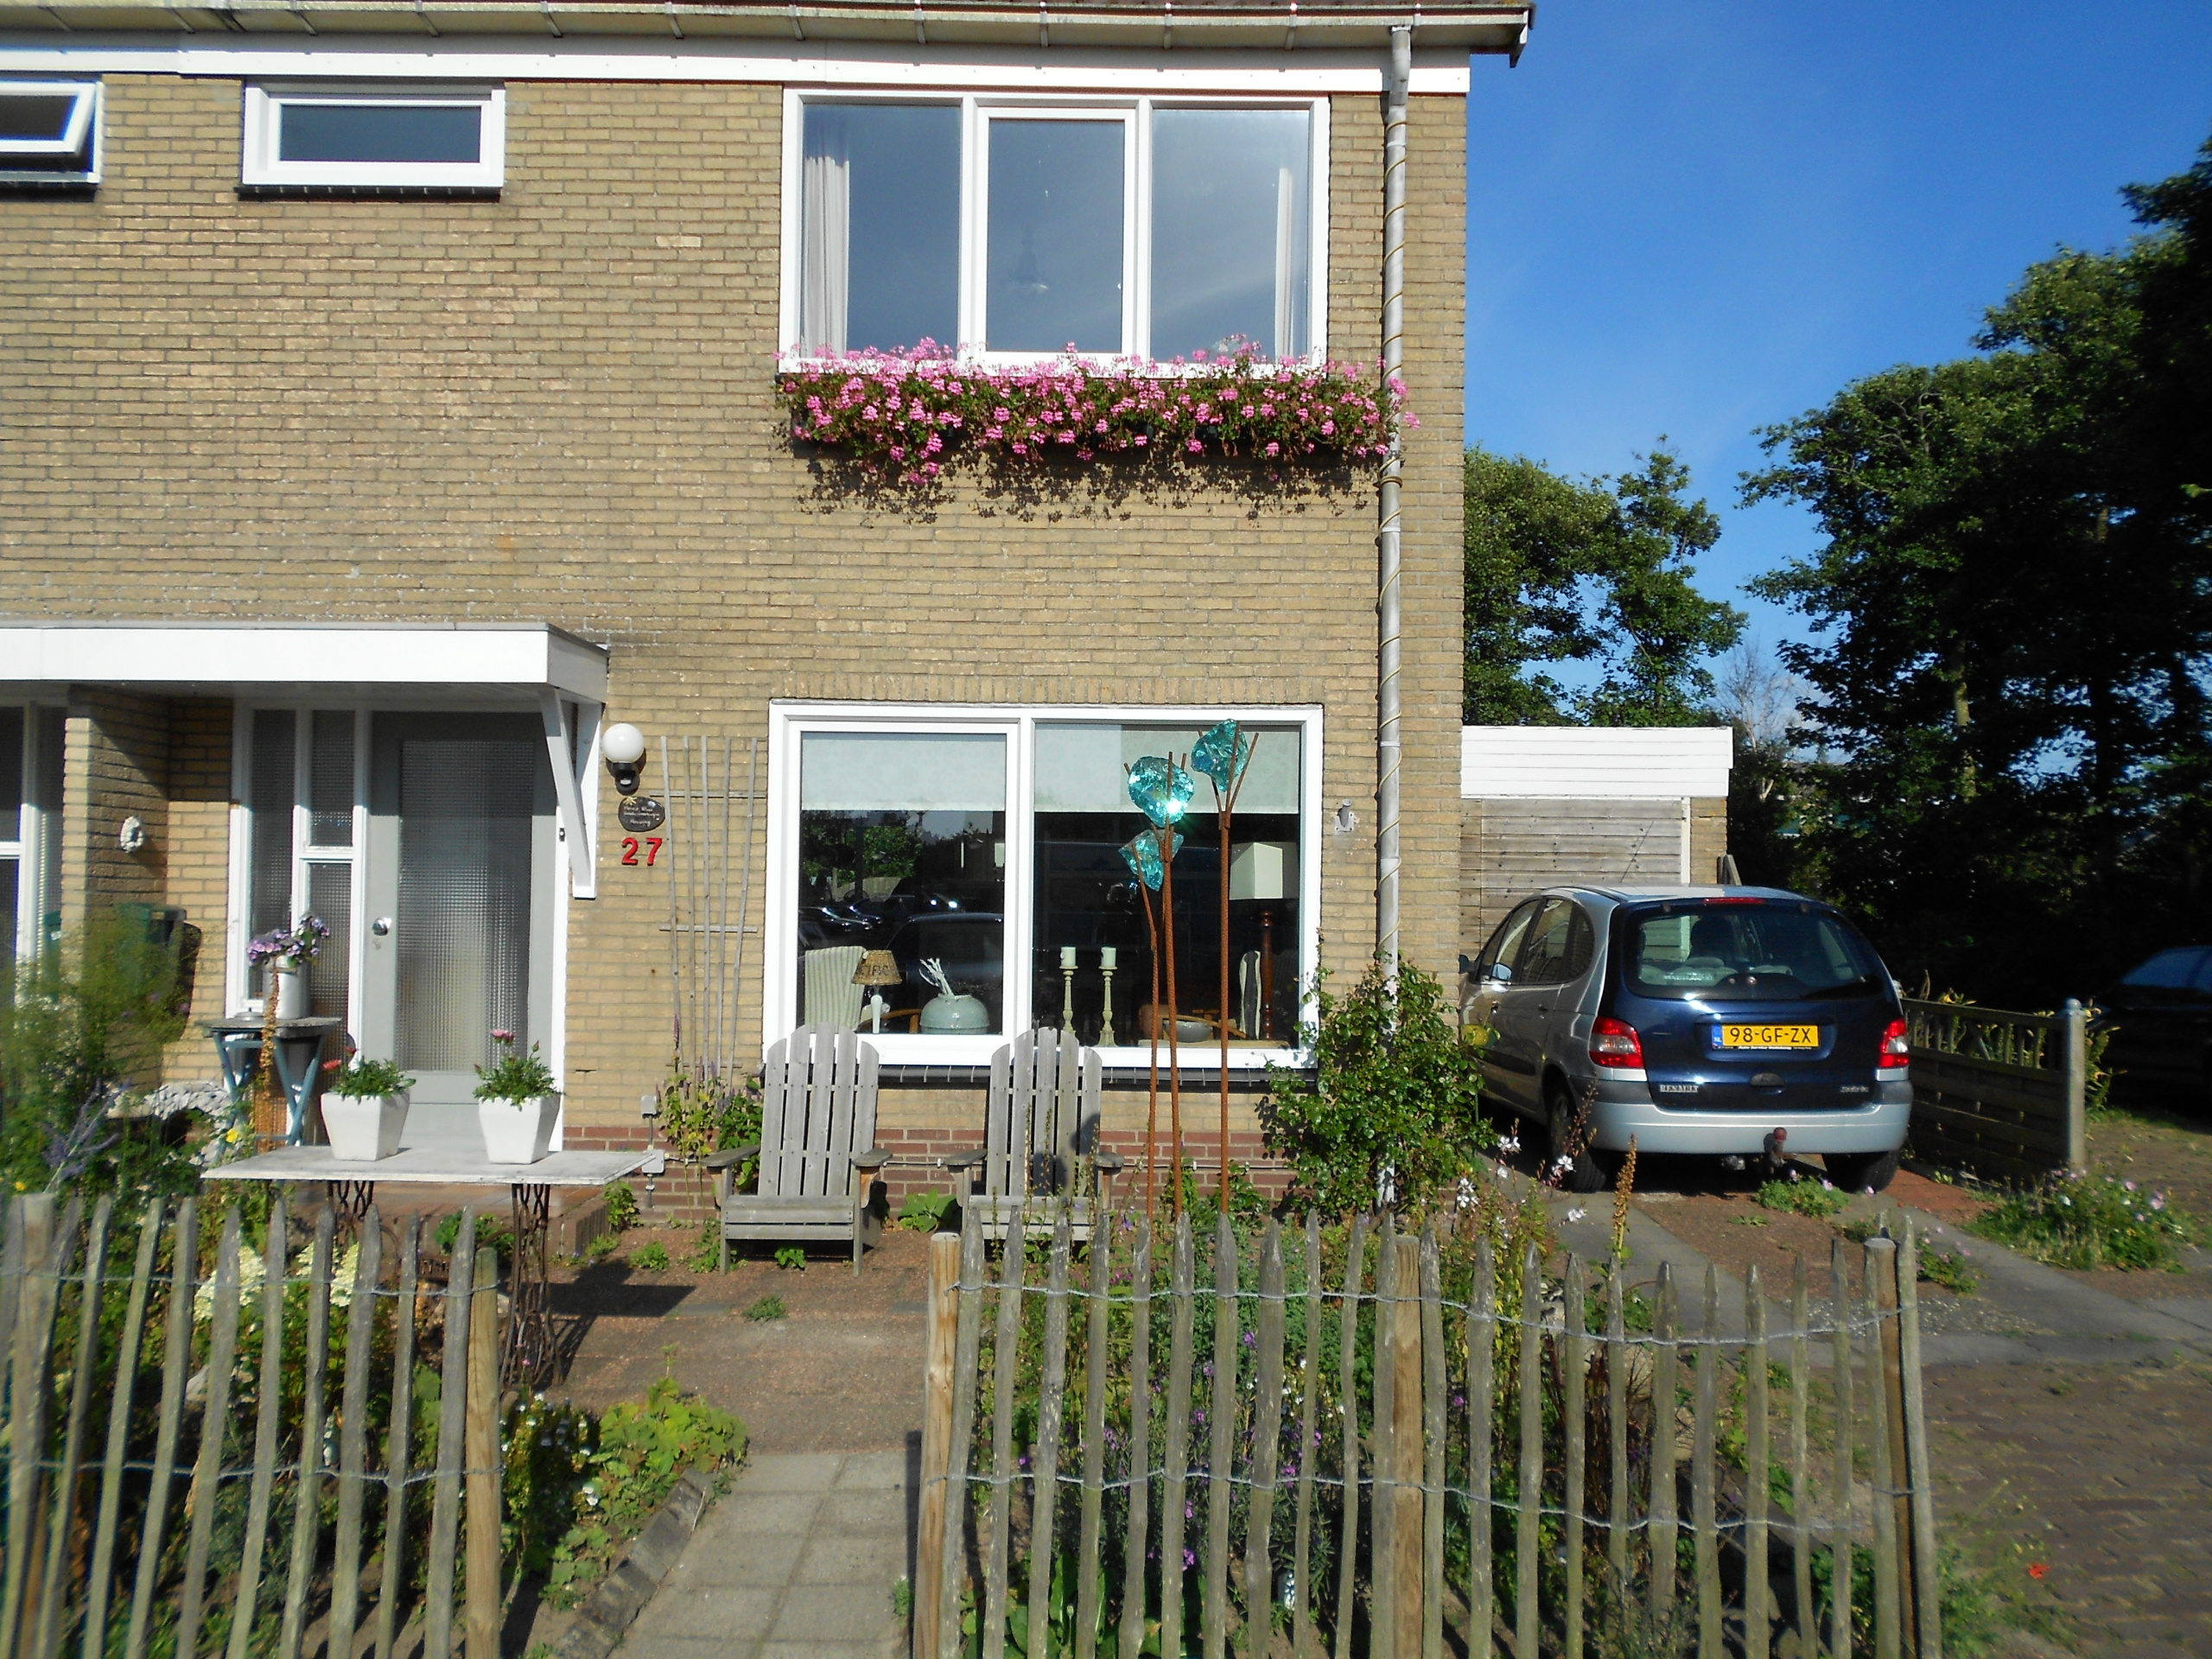 B & B on a residential area within walking distance of the center of De Koog